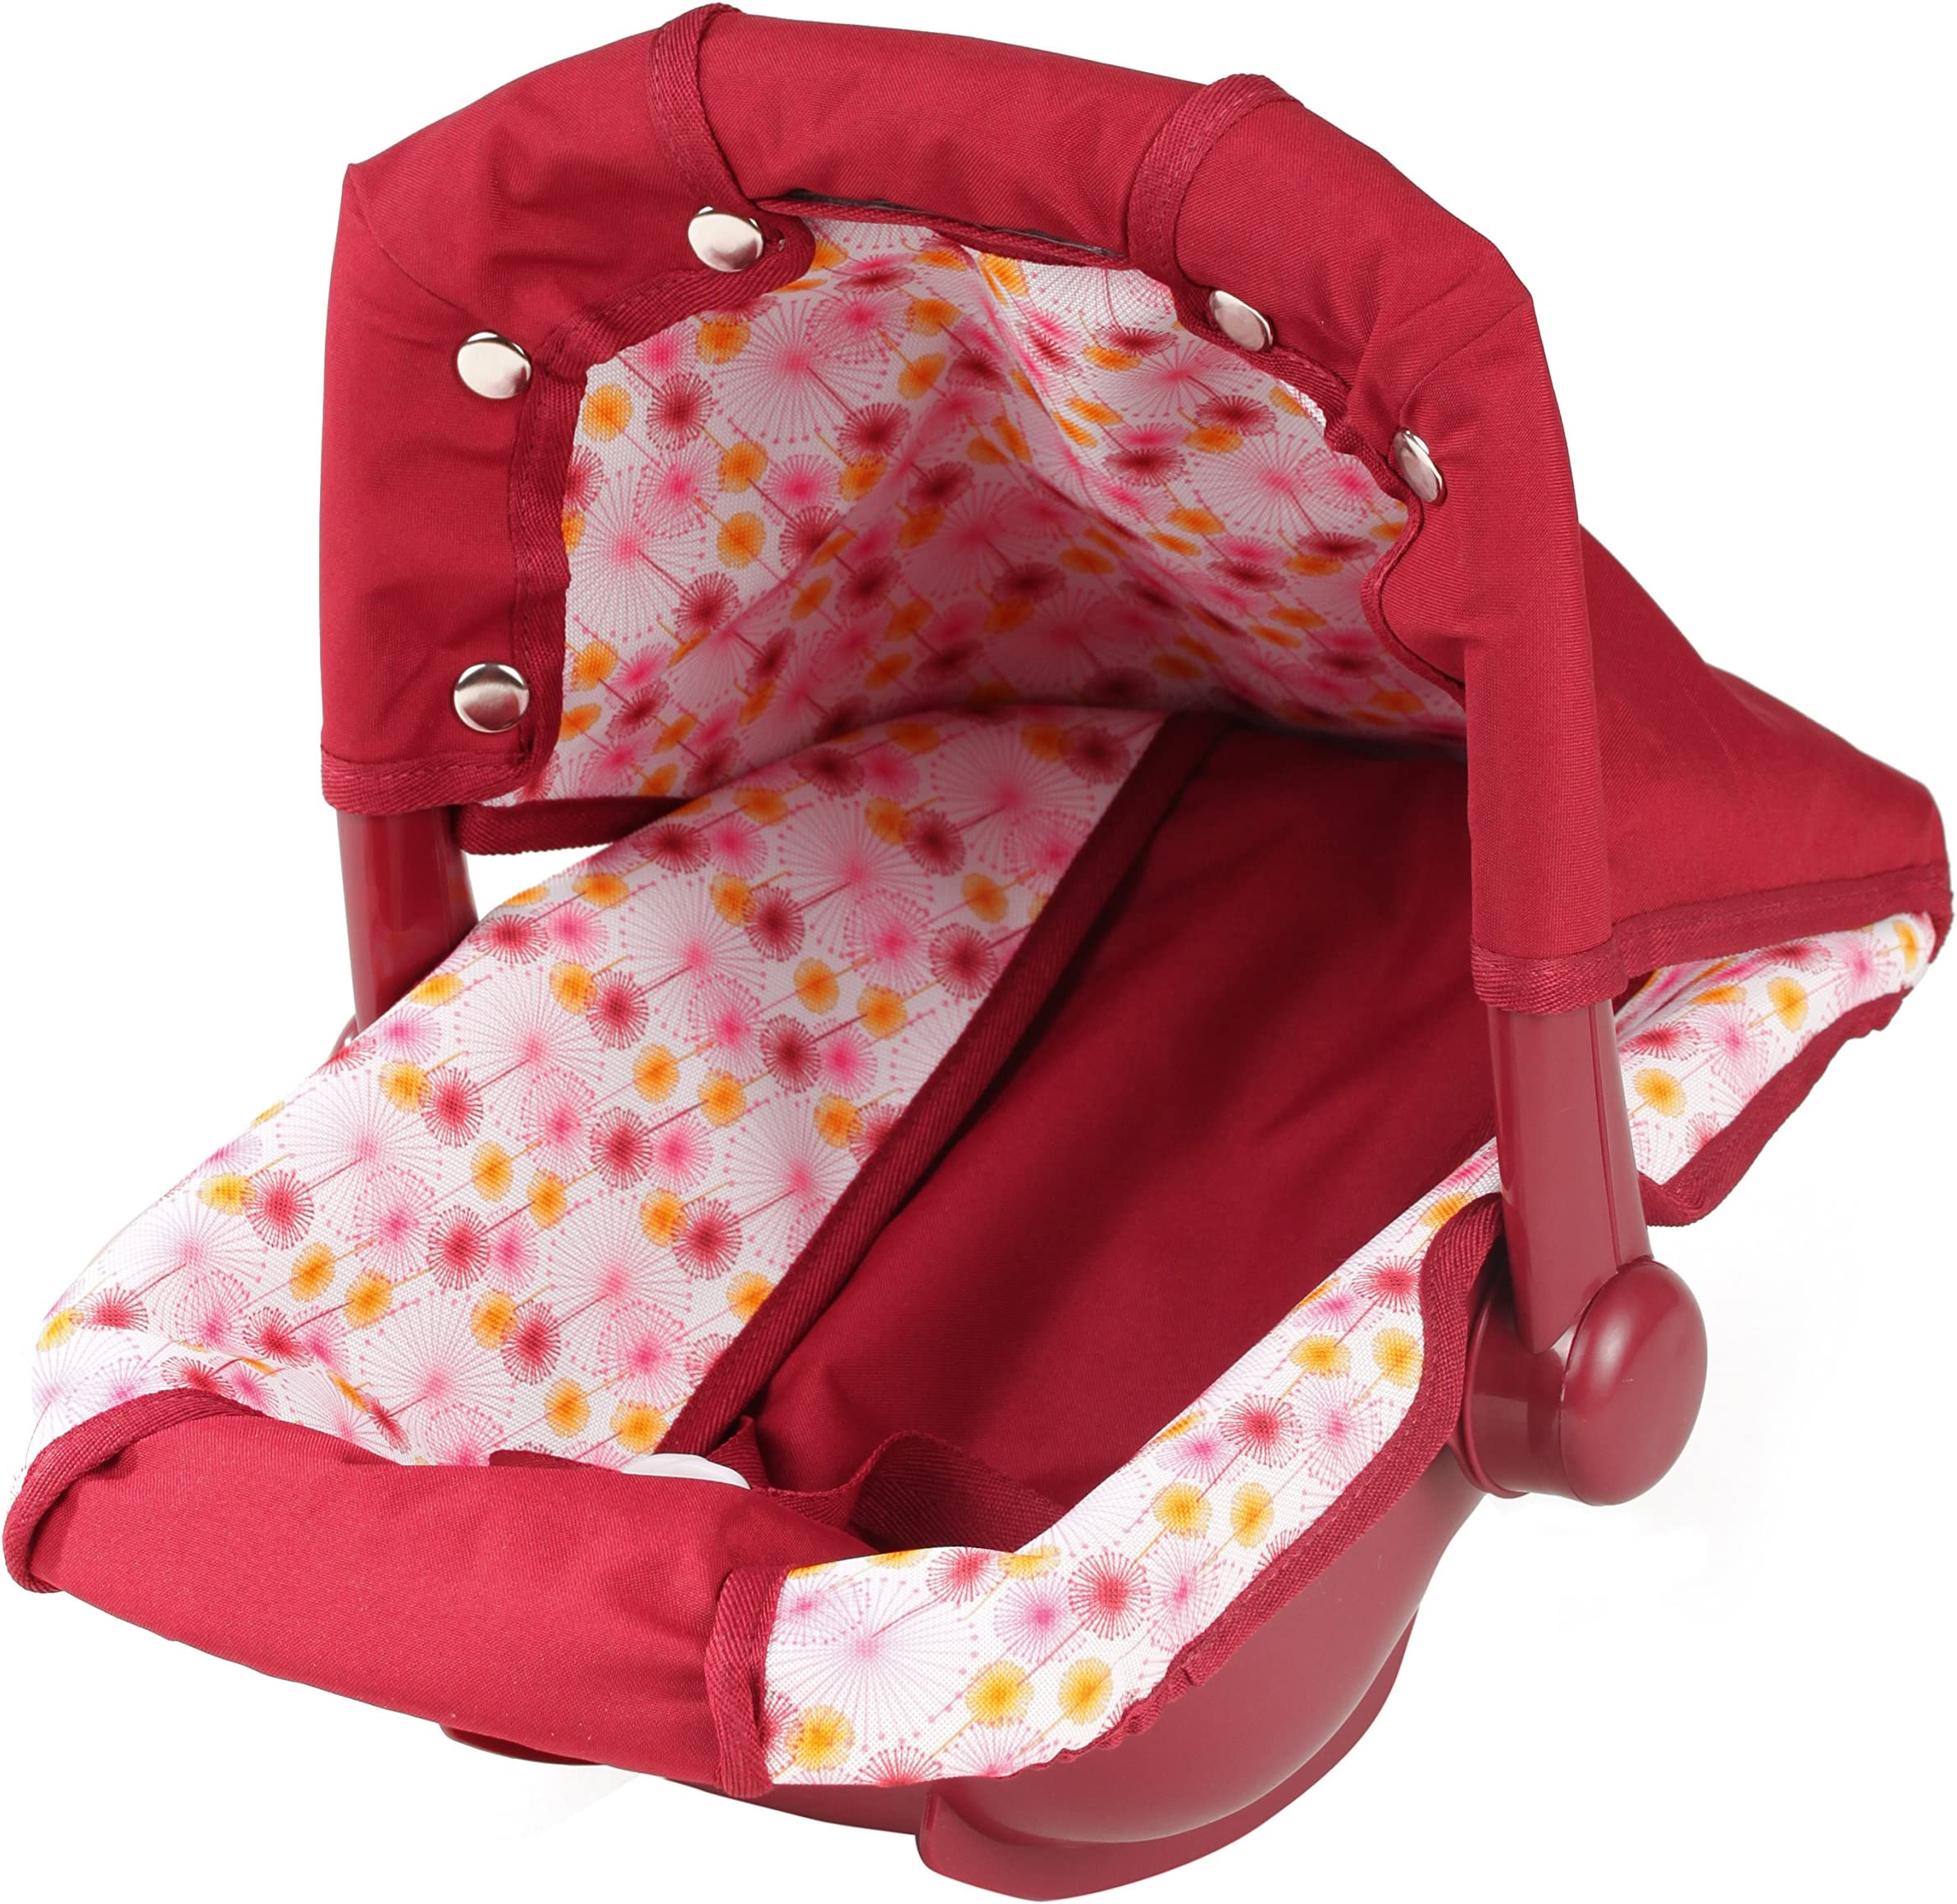 Gotz Baby Doll Car Seat Carrier with Canopy for Dolls up to 16.5 inches